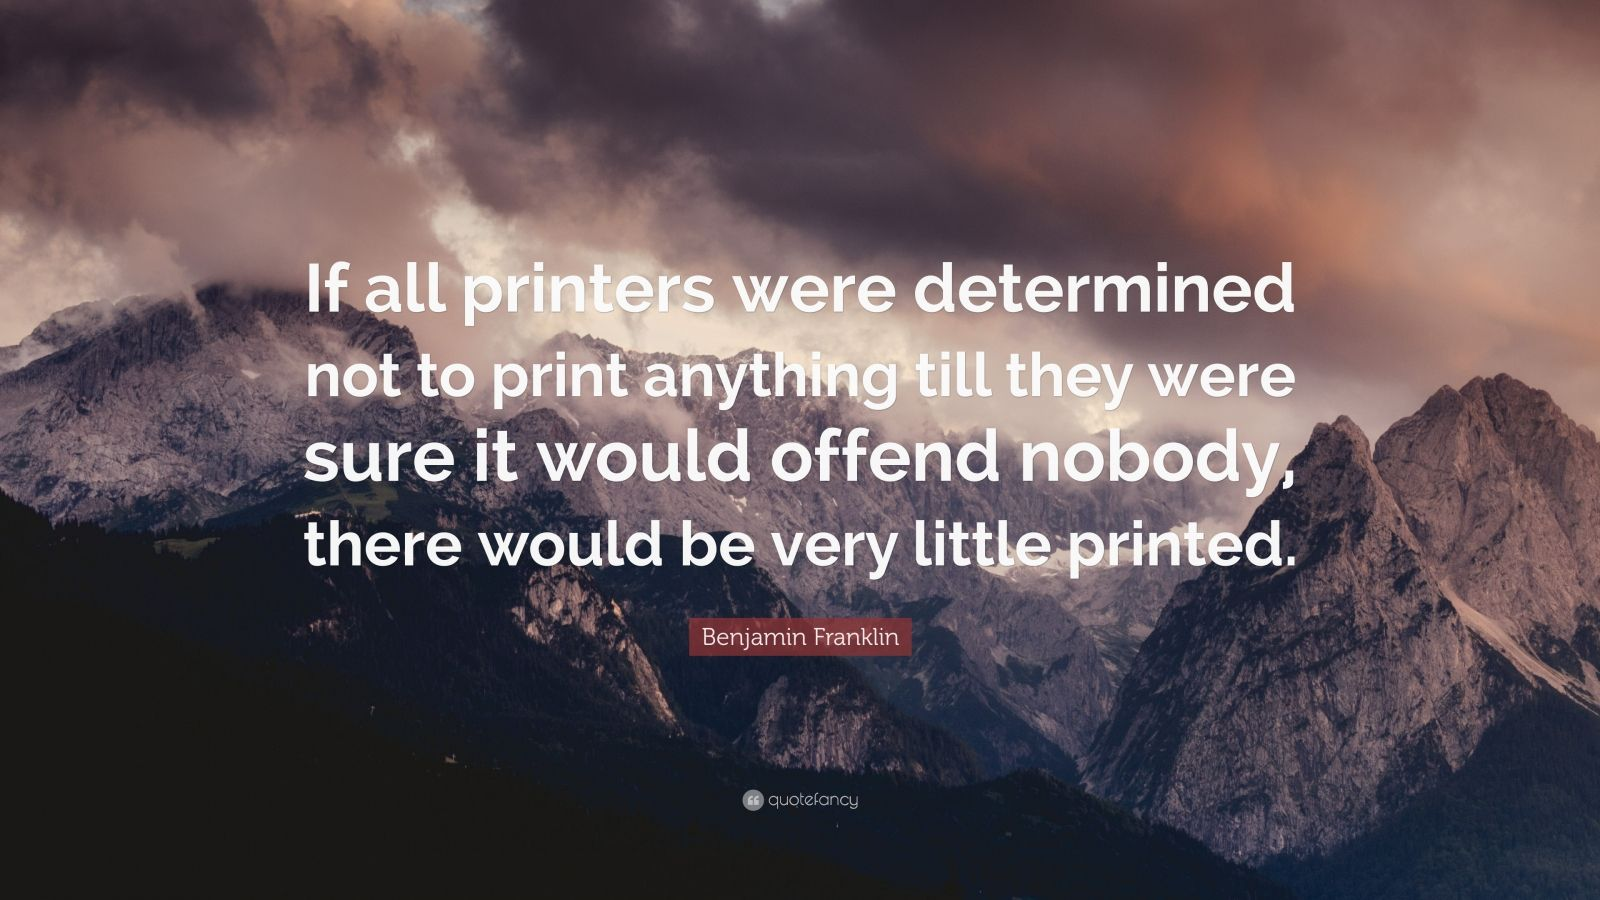 """Benjamin Franklin Quote: """"If all printers were determined not to print anything till they were sure it would offend nobody, there would be very little printed."""""""